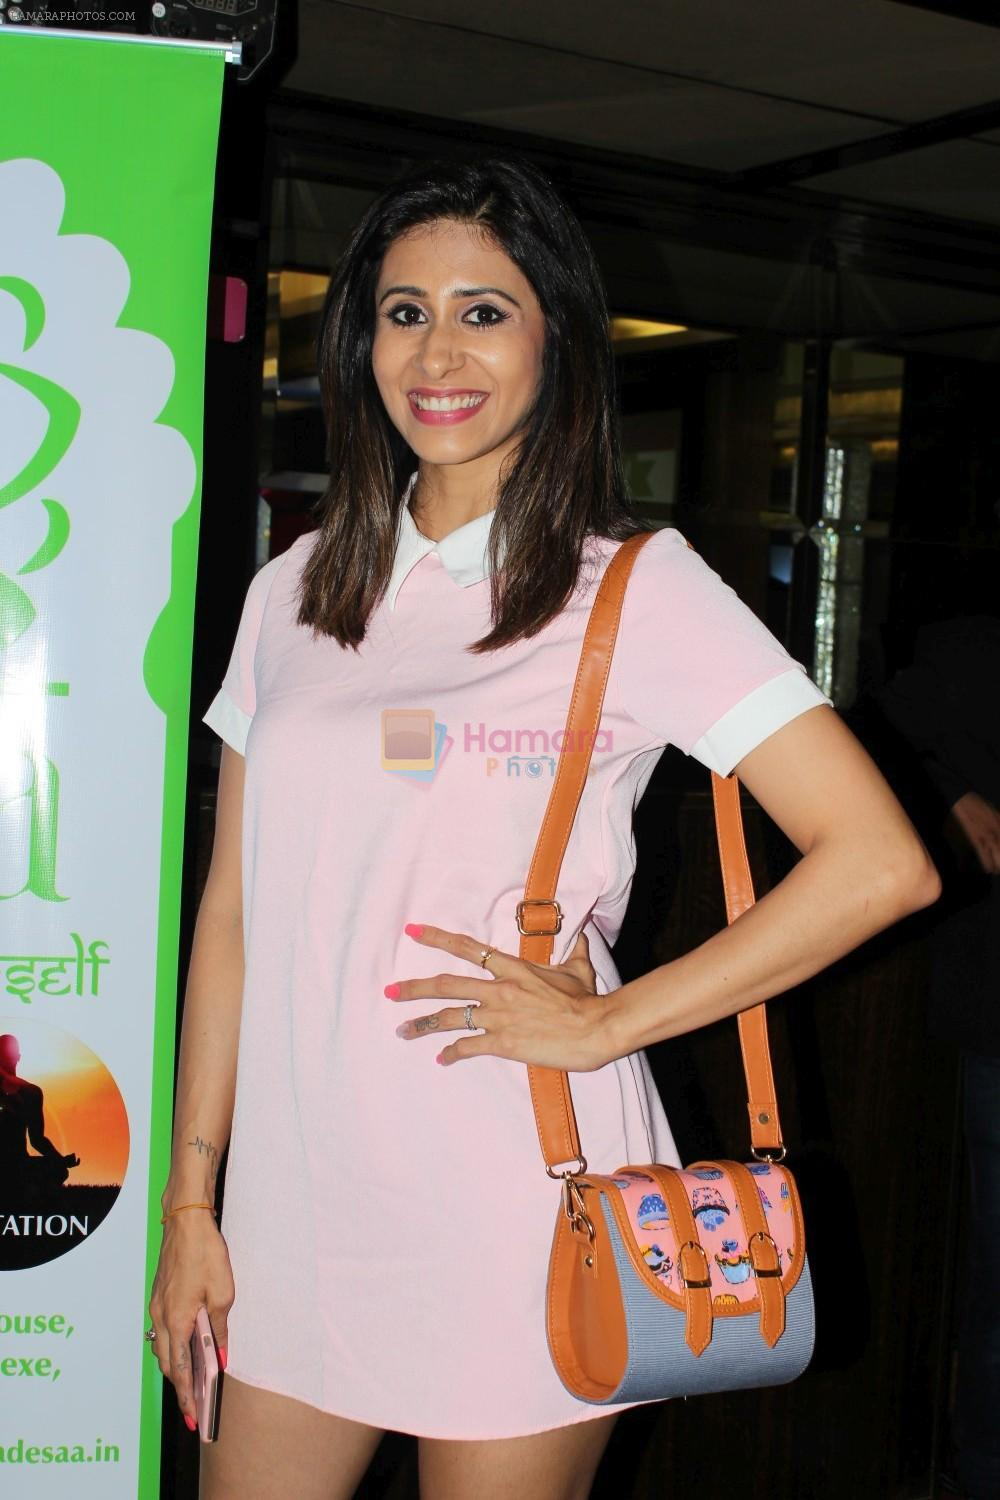 Kishwar Merchant at The Grand Launch Of Adesaa Wellness Concerning Yoga on 19th May 2017